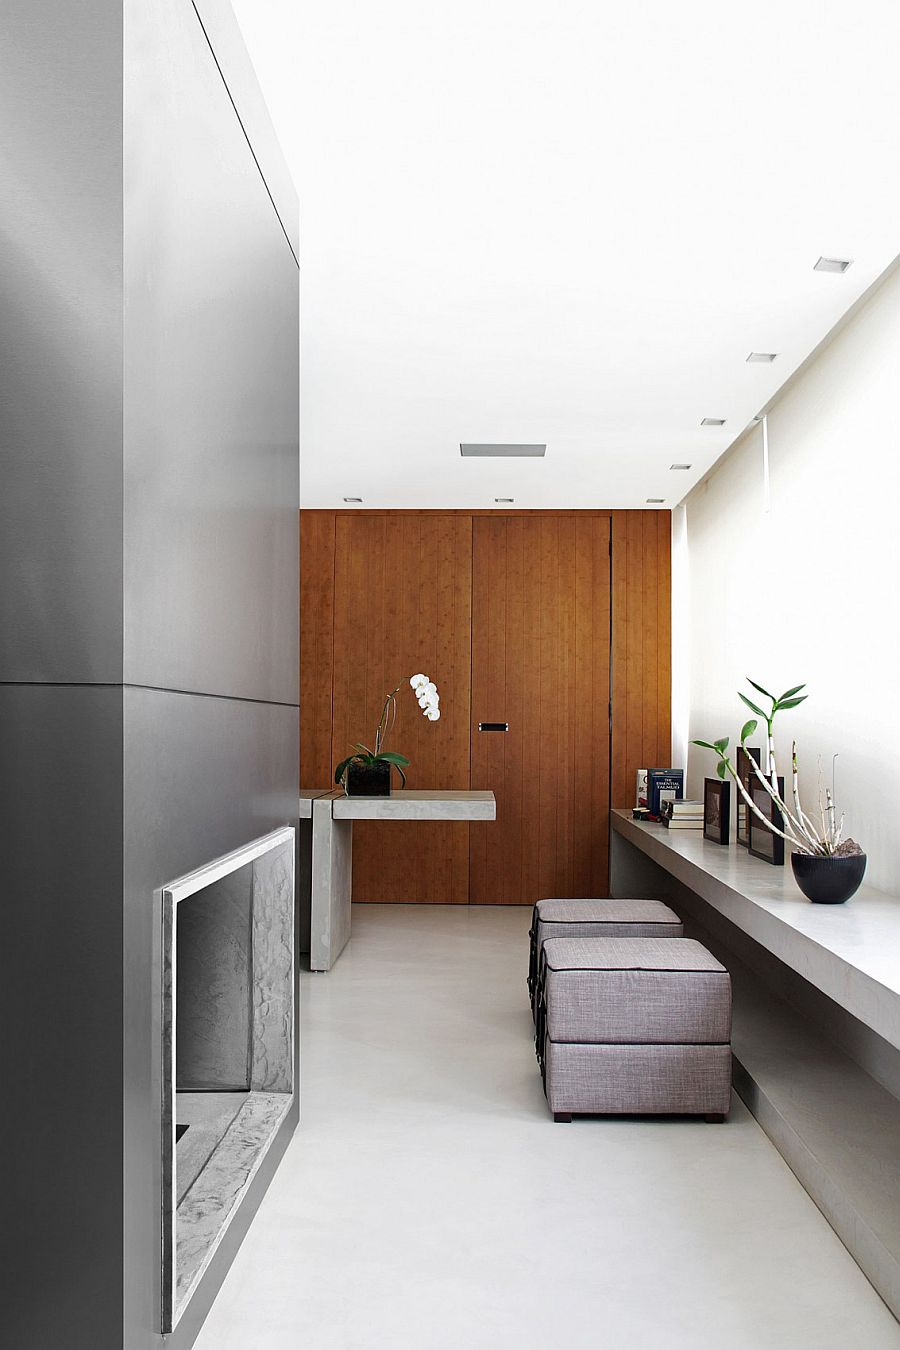 Wooden doors and wall surfaces bring warmth to the modern minimal home